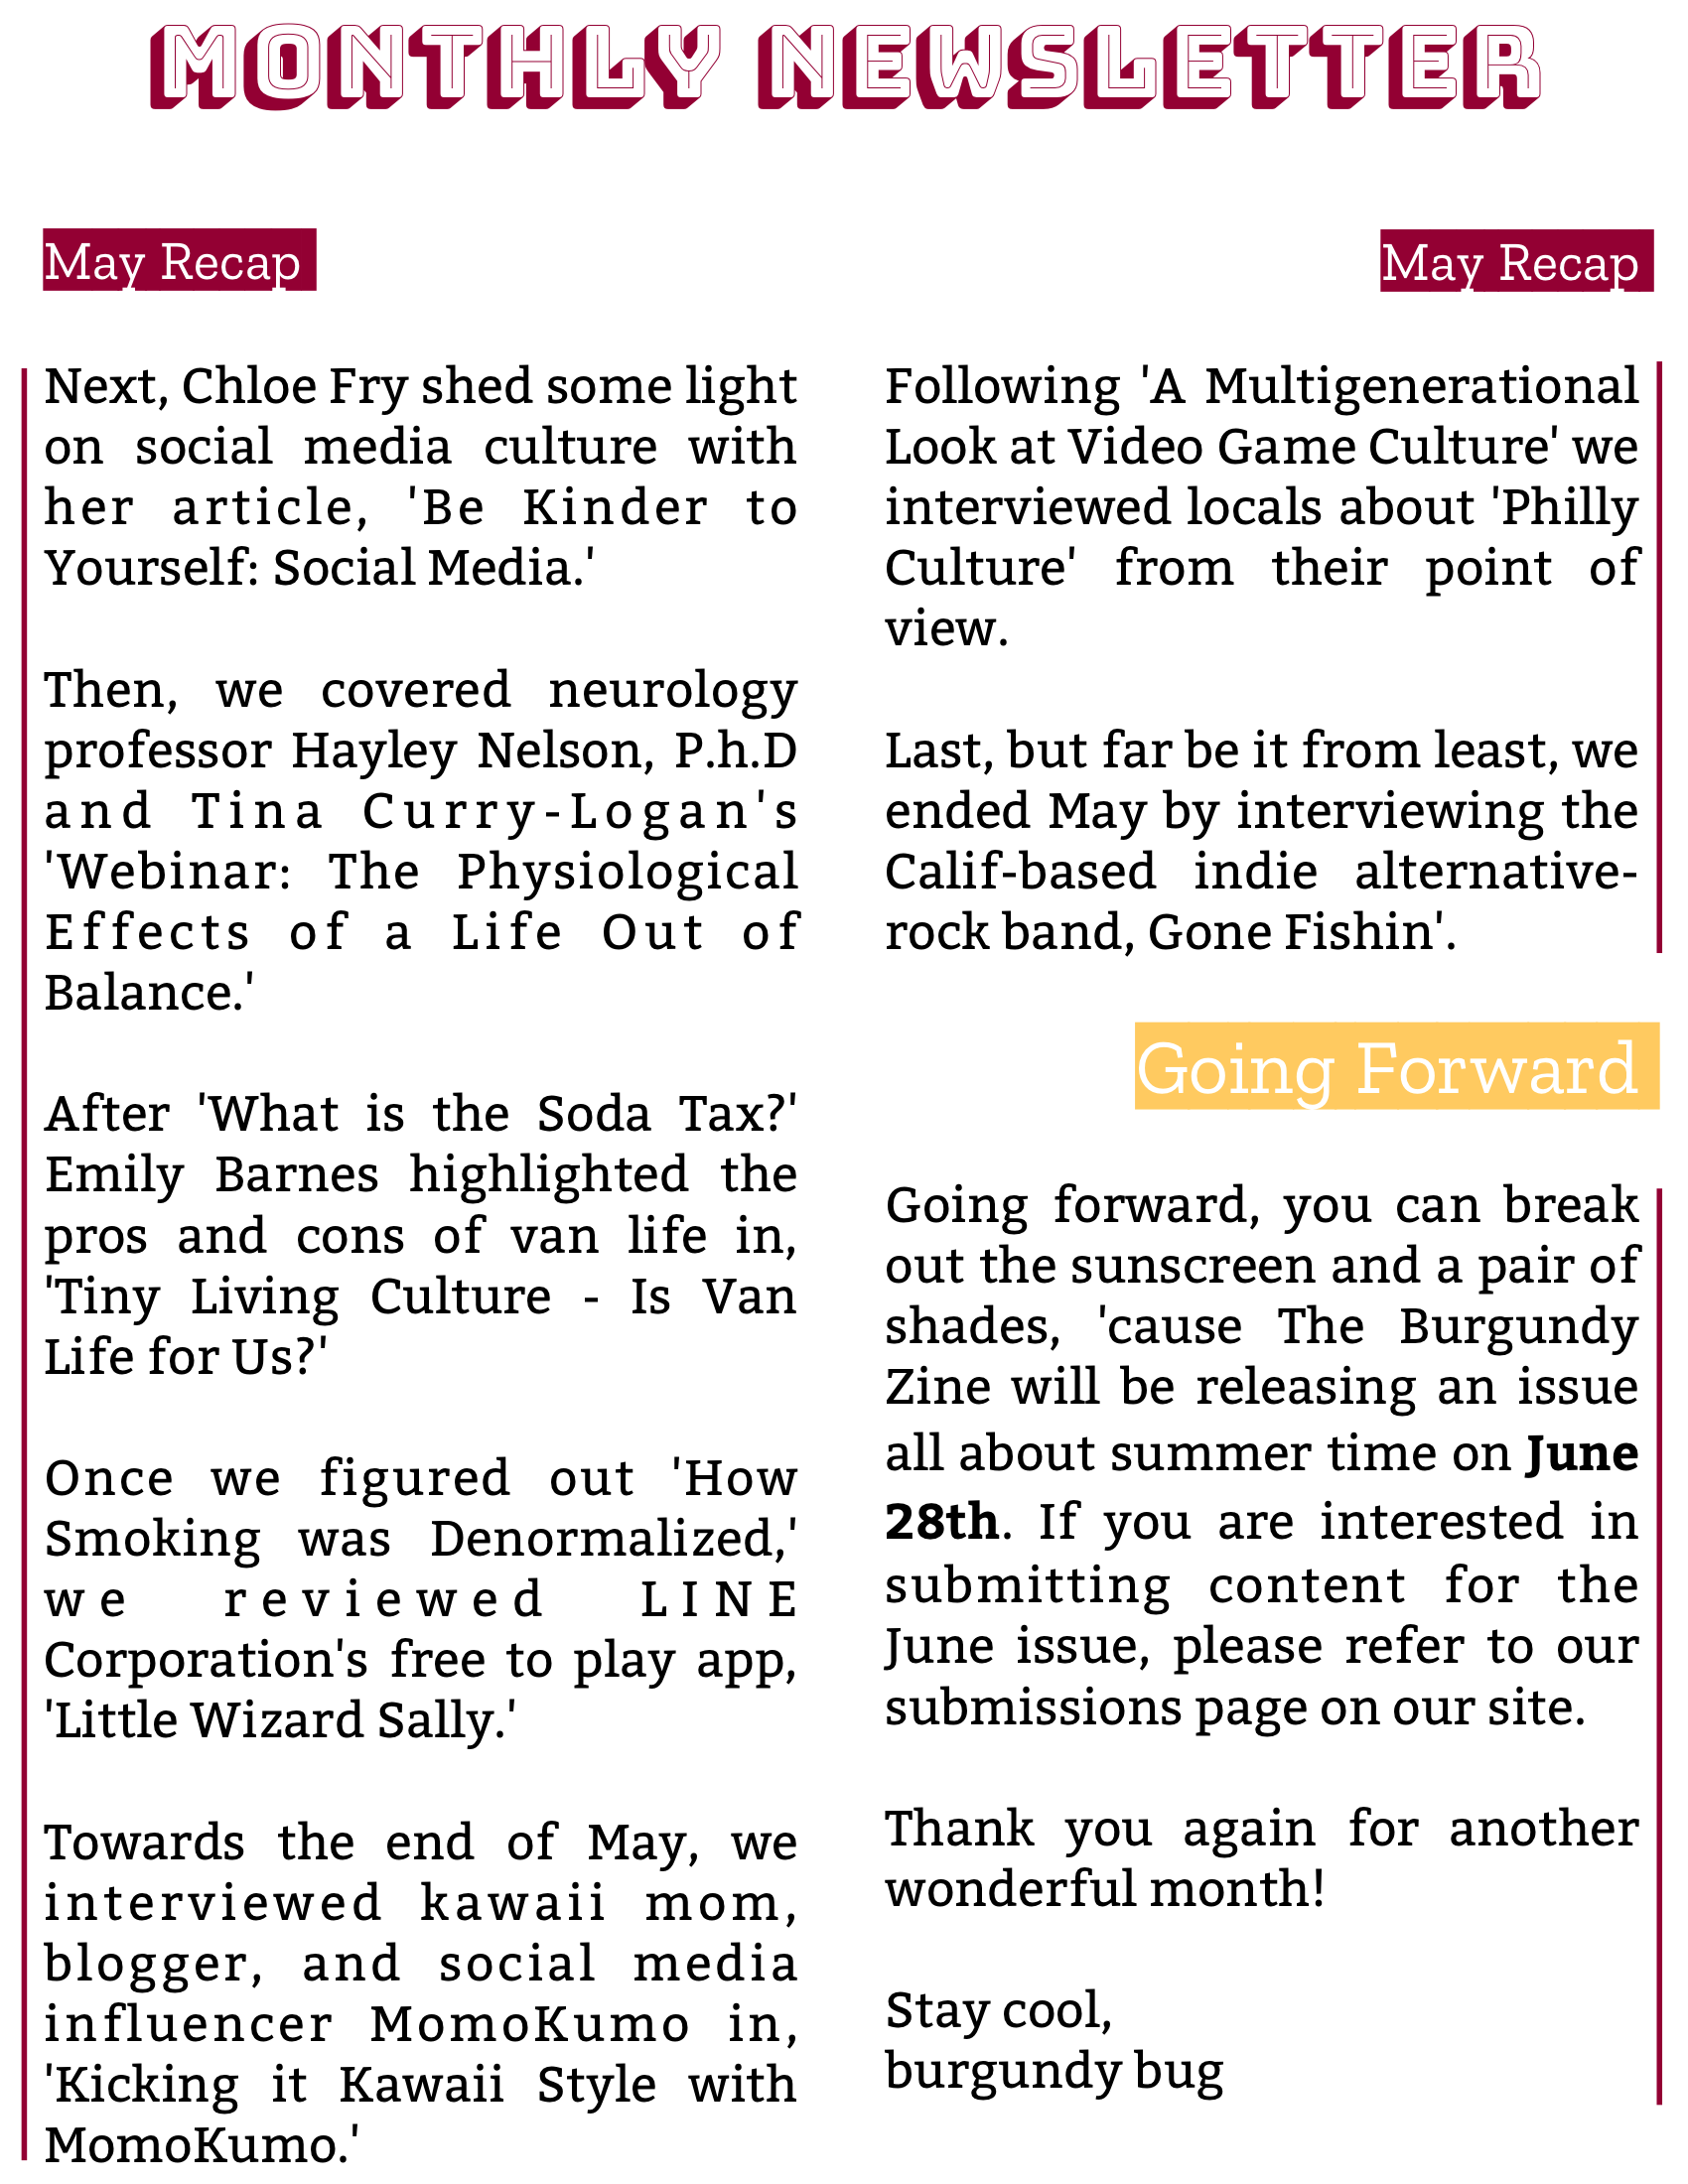 The Burgundy Zine #5: Culture Pg. 142